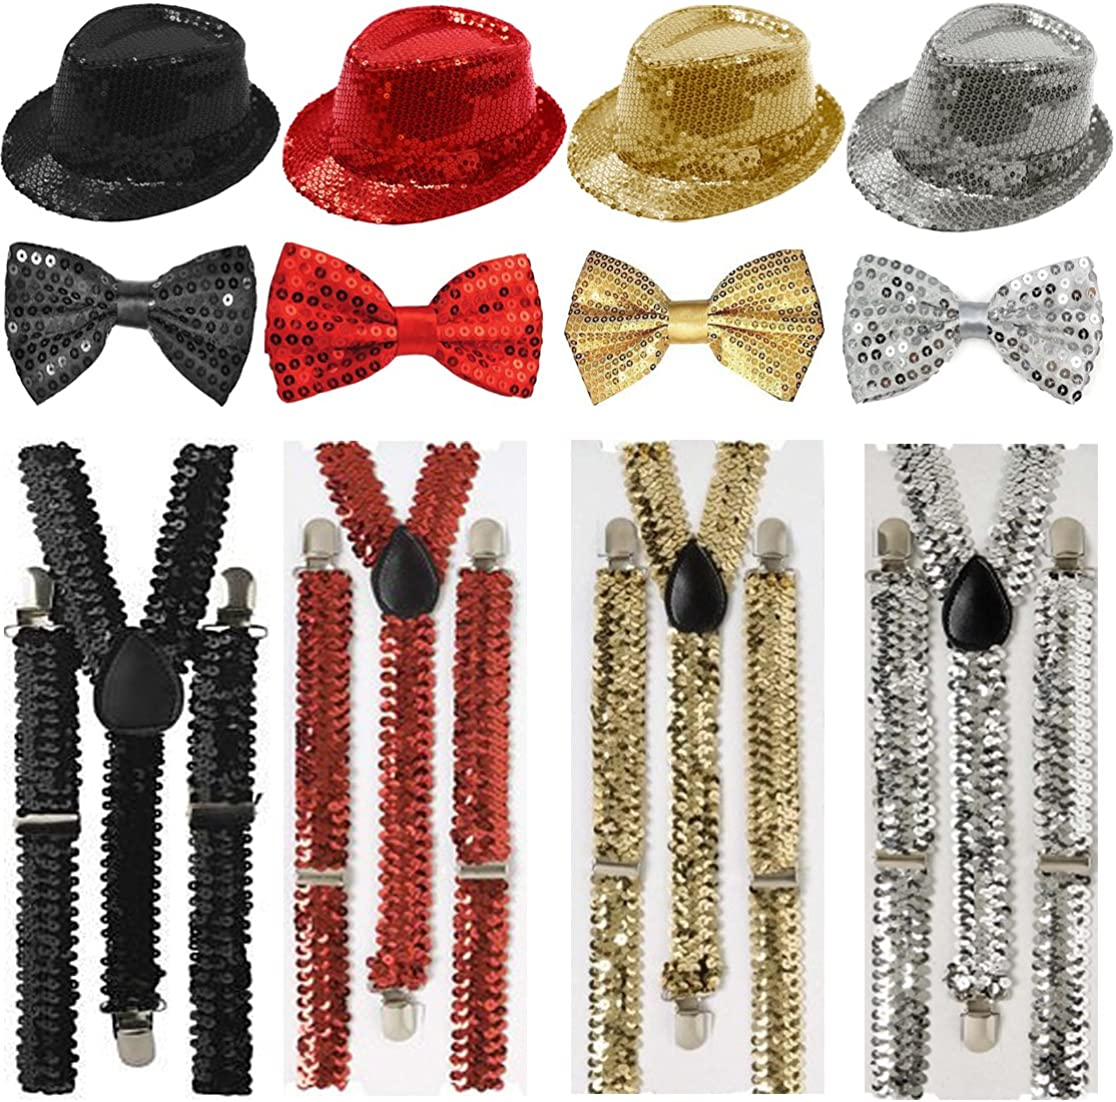 GOLD CIRCUS CLOWN SEQUIN BOW TIE mens womens fancy dress costume accessory